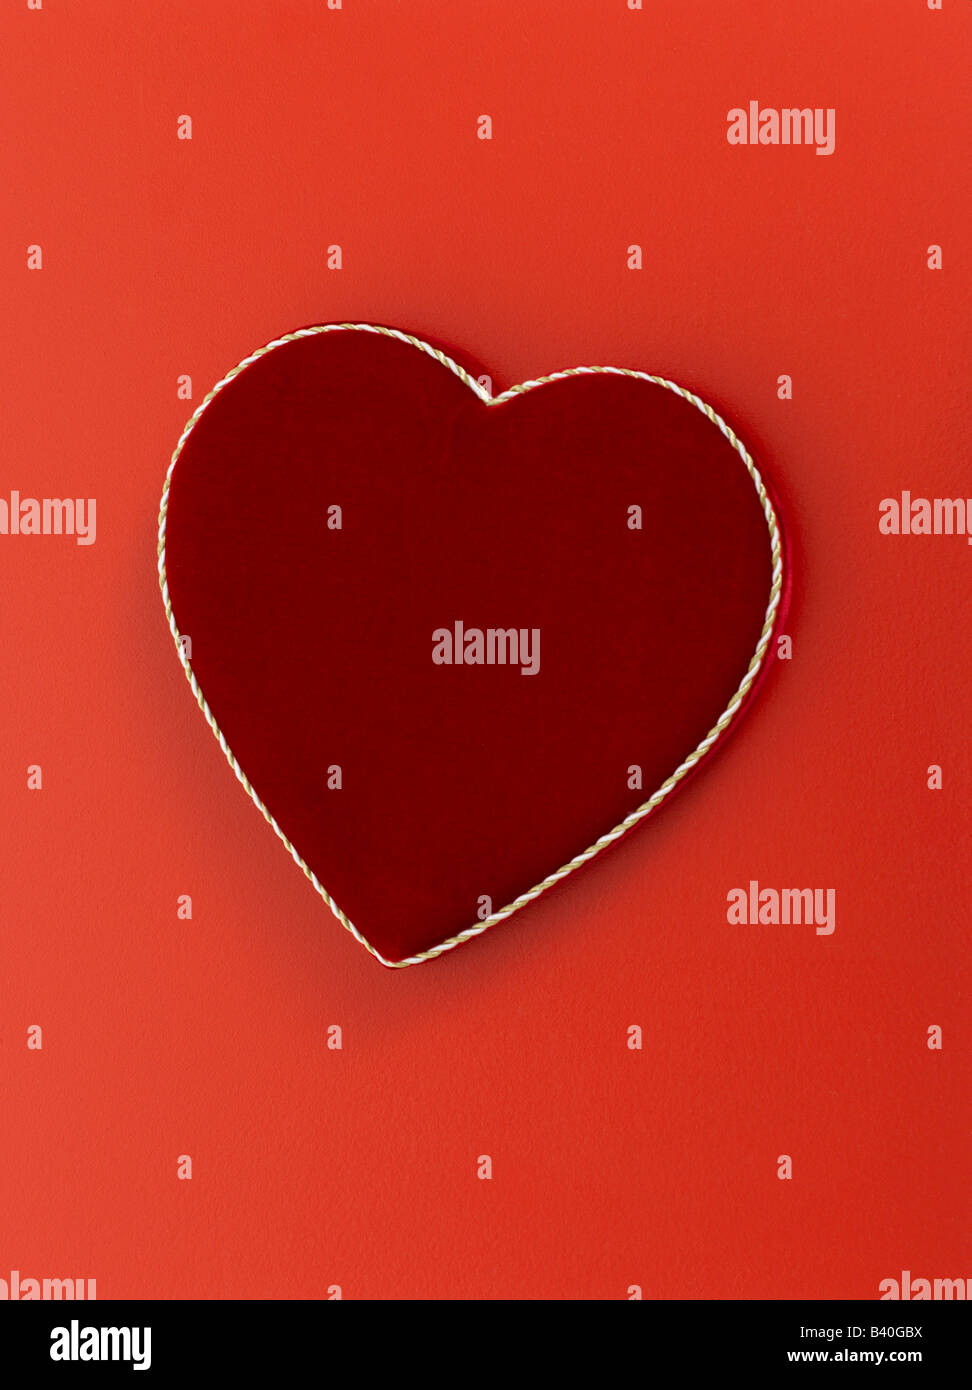 Heart shaped valentines day chocolate box on red background - Stock Image